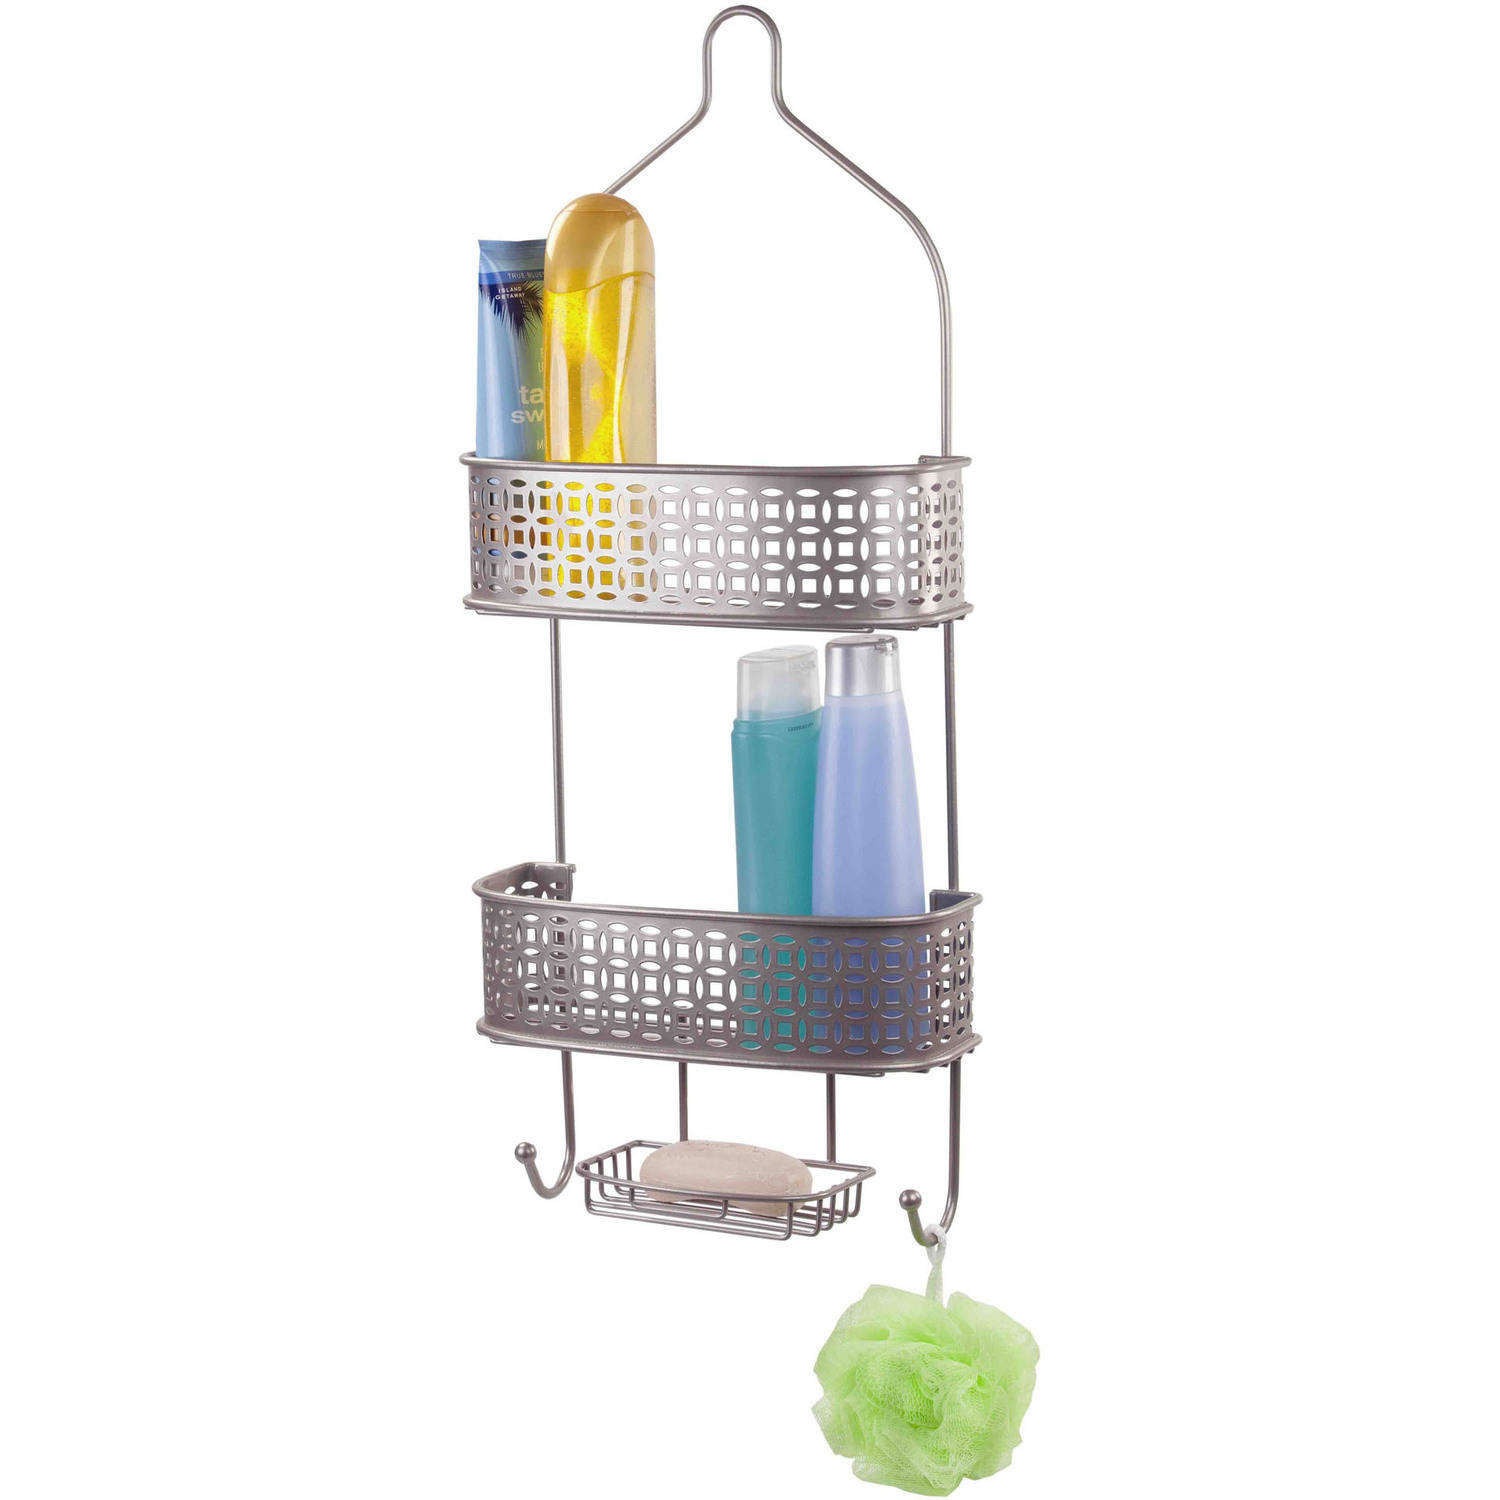 Home Basics Satin Nickel Shower Caddy by Generic